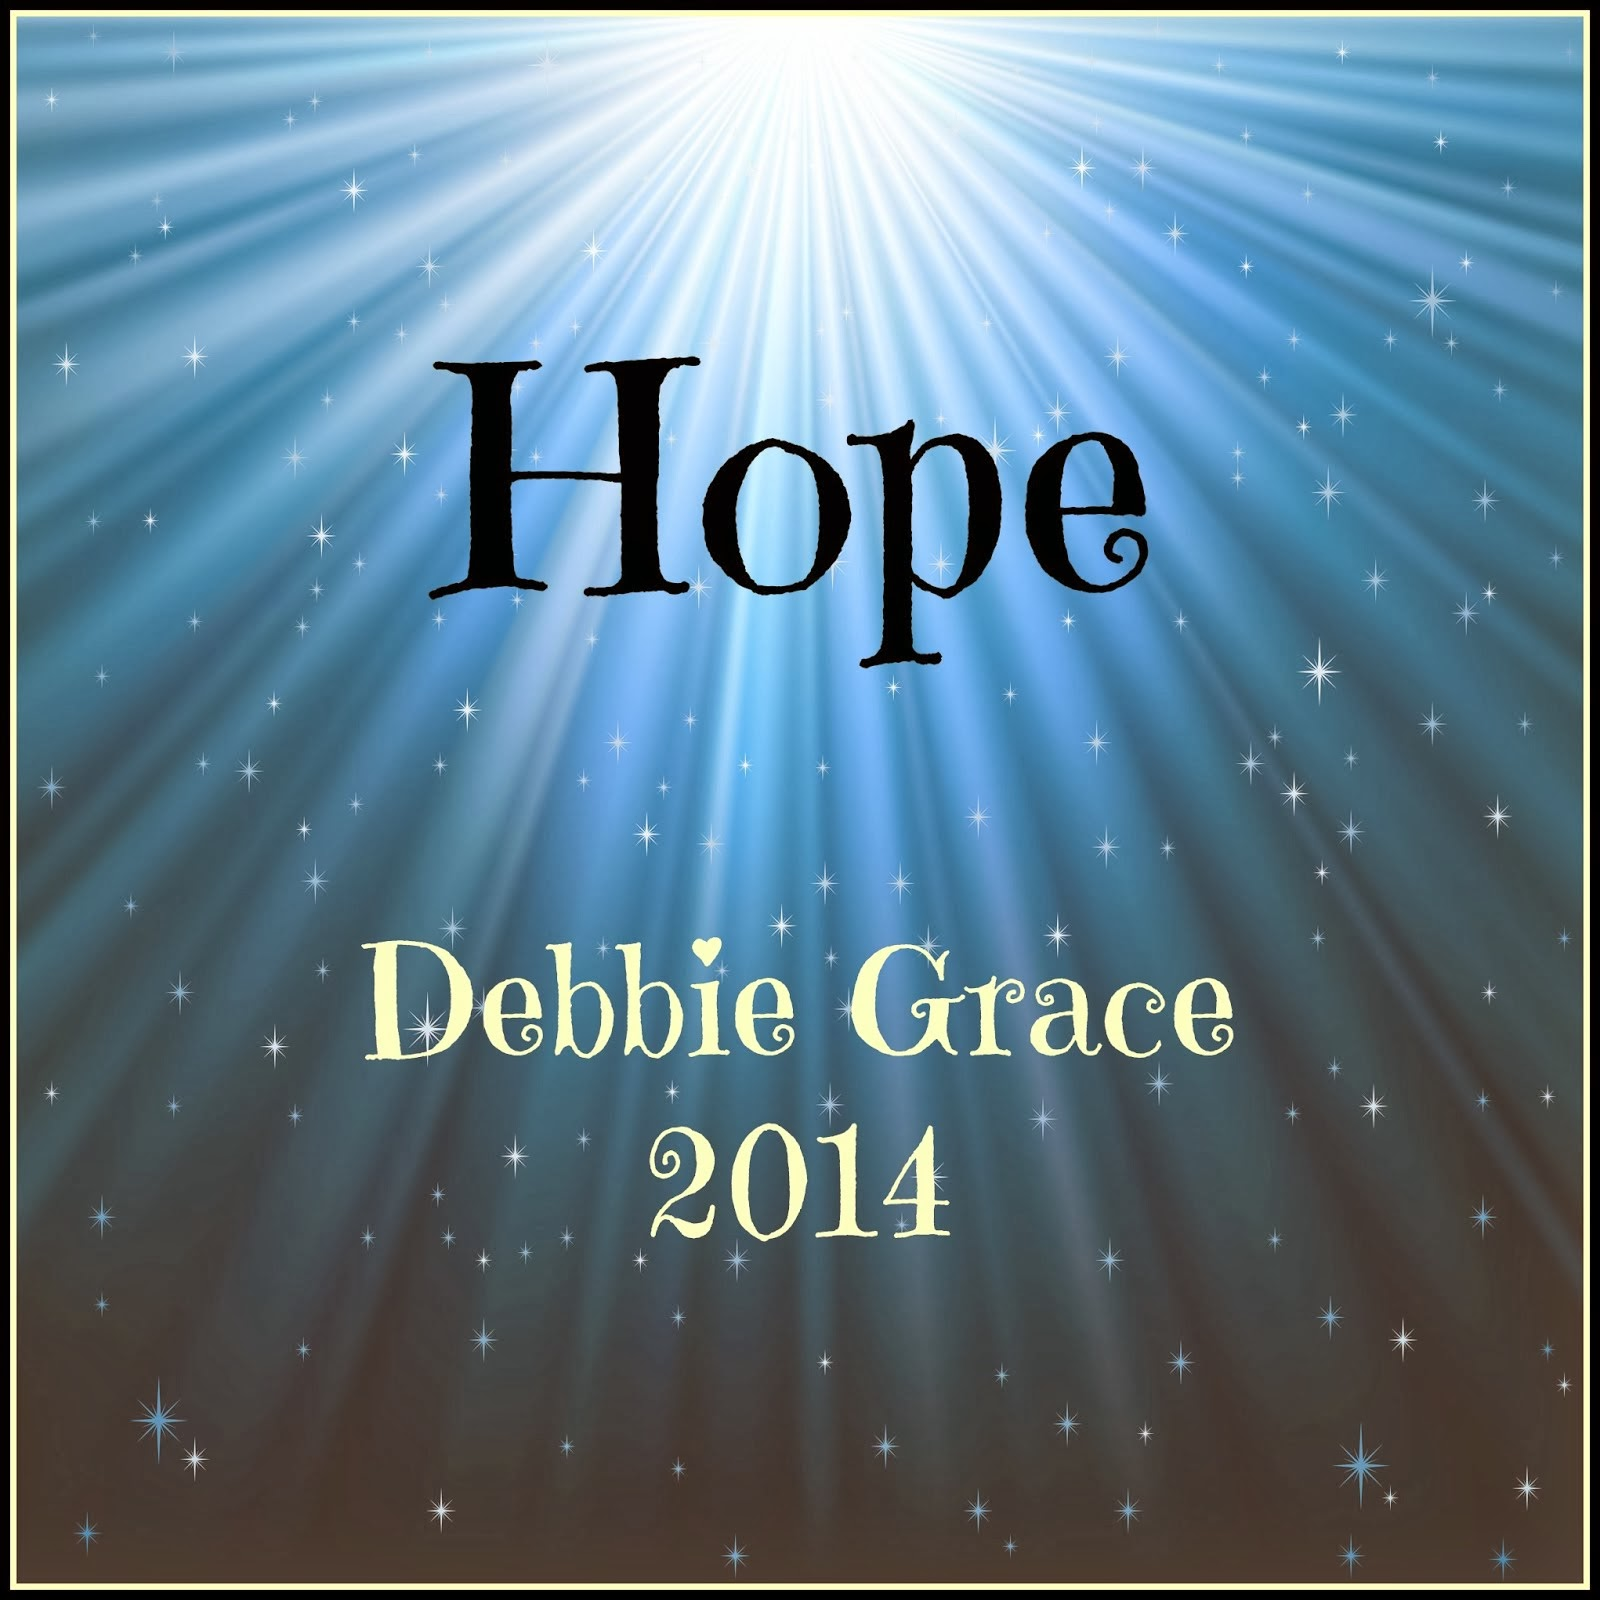 Hope was my word for 2014